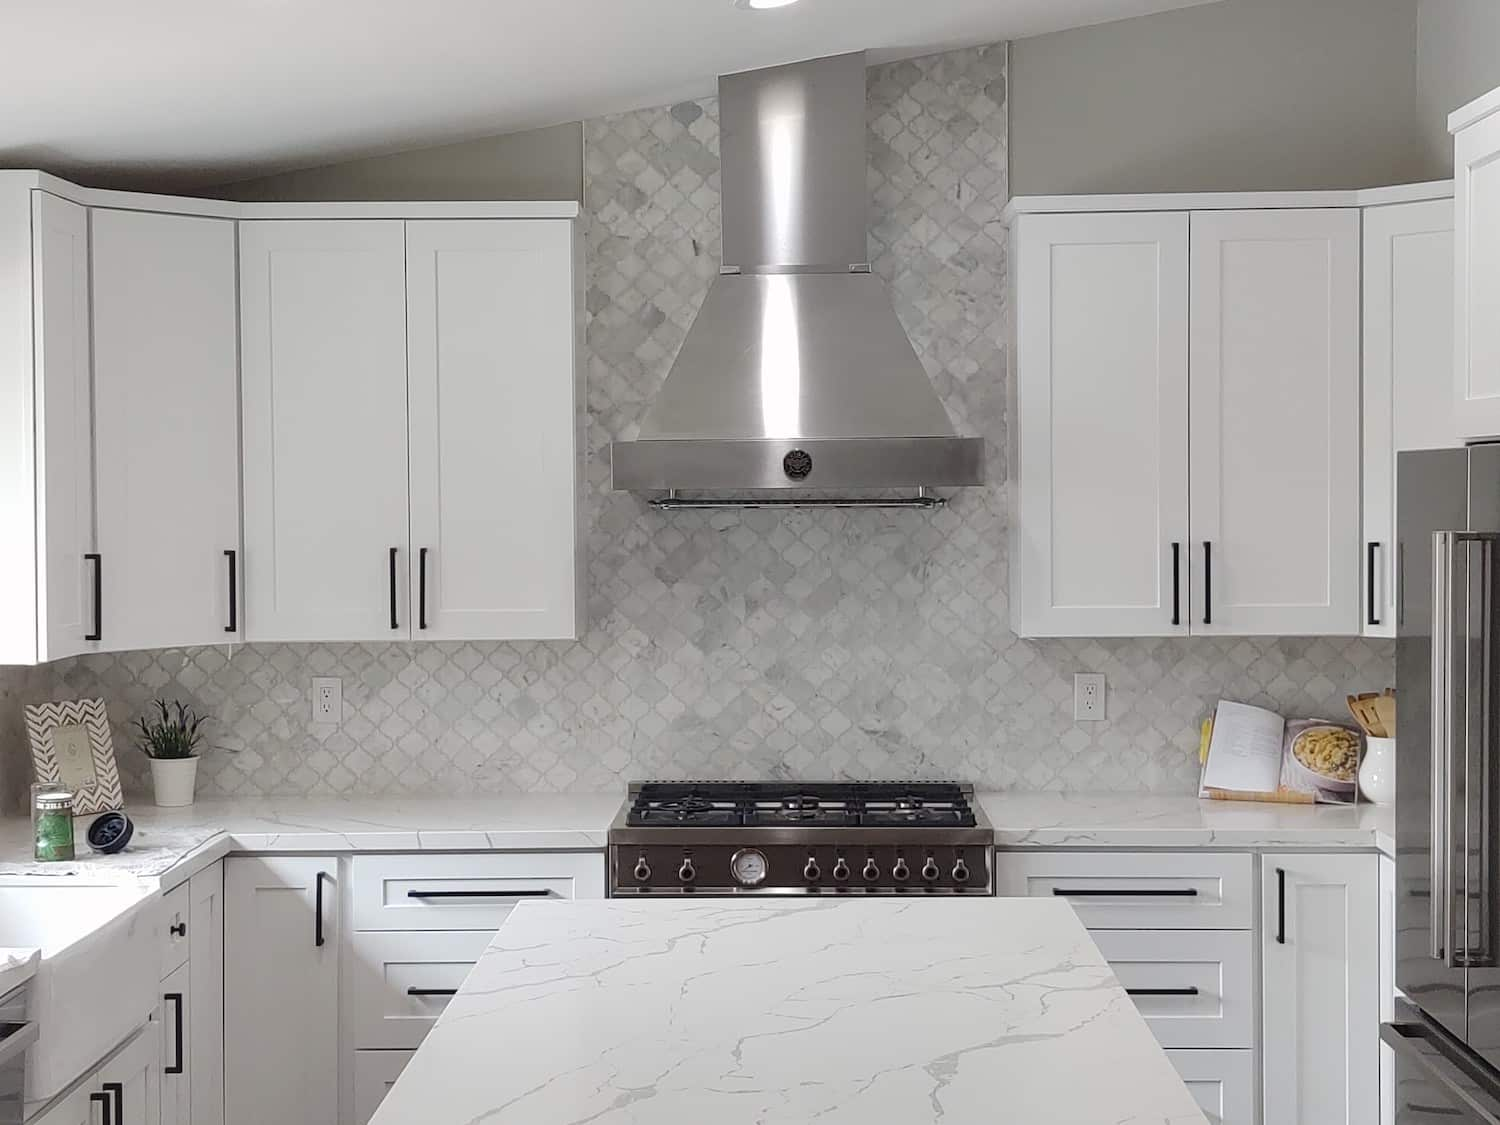 White kitchen cabinets and countertops as part of a remodel in Tucson